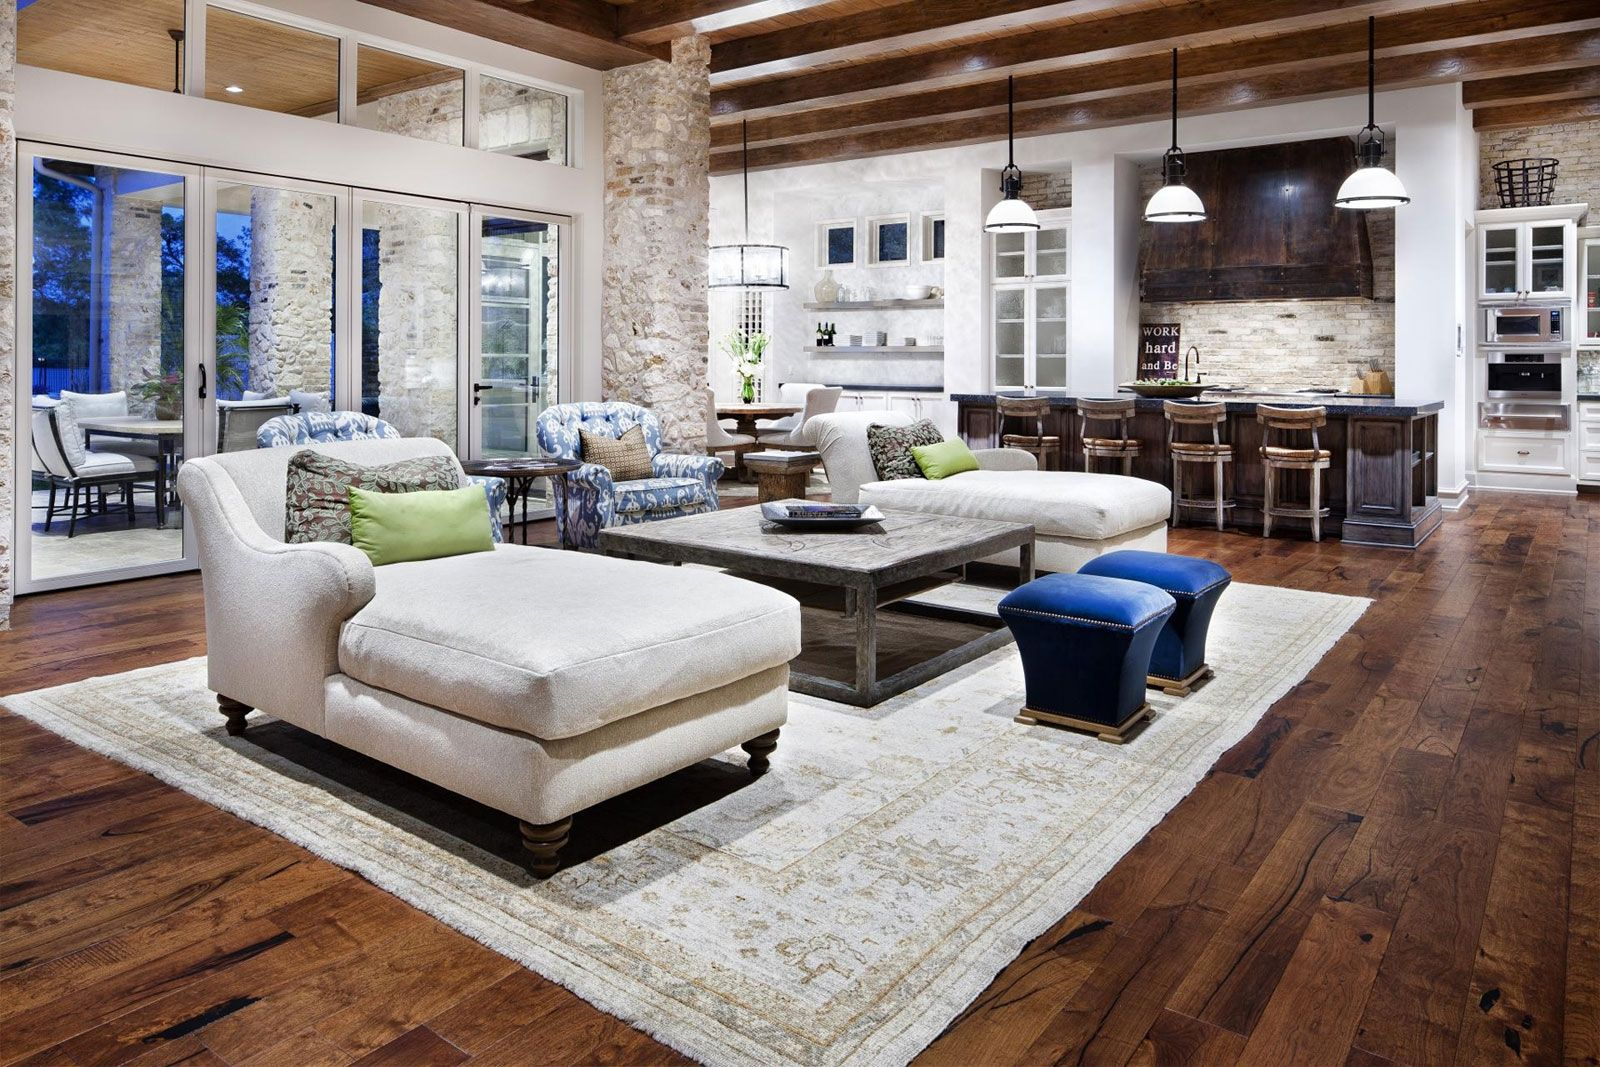 living room chaise lounge ideas small nyc apartment decorating large rustic modern design white sofa bed blue footstool wooden table carpet tiles wood floor glass